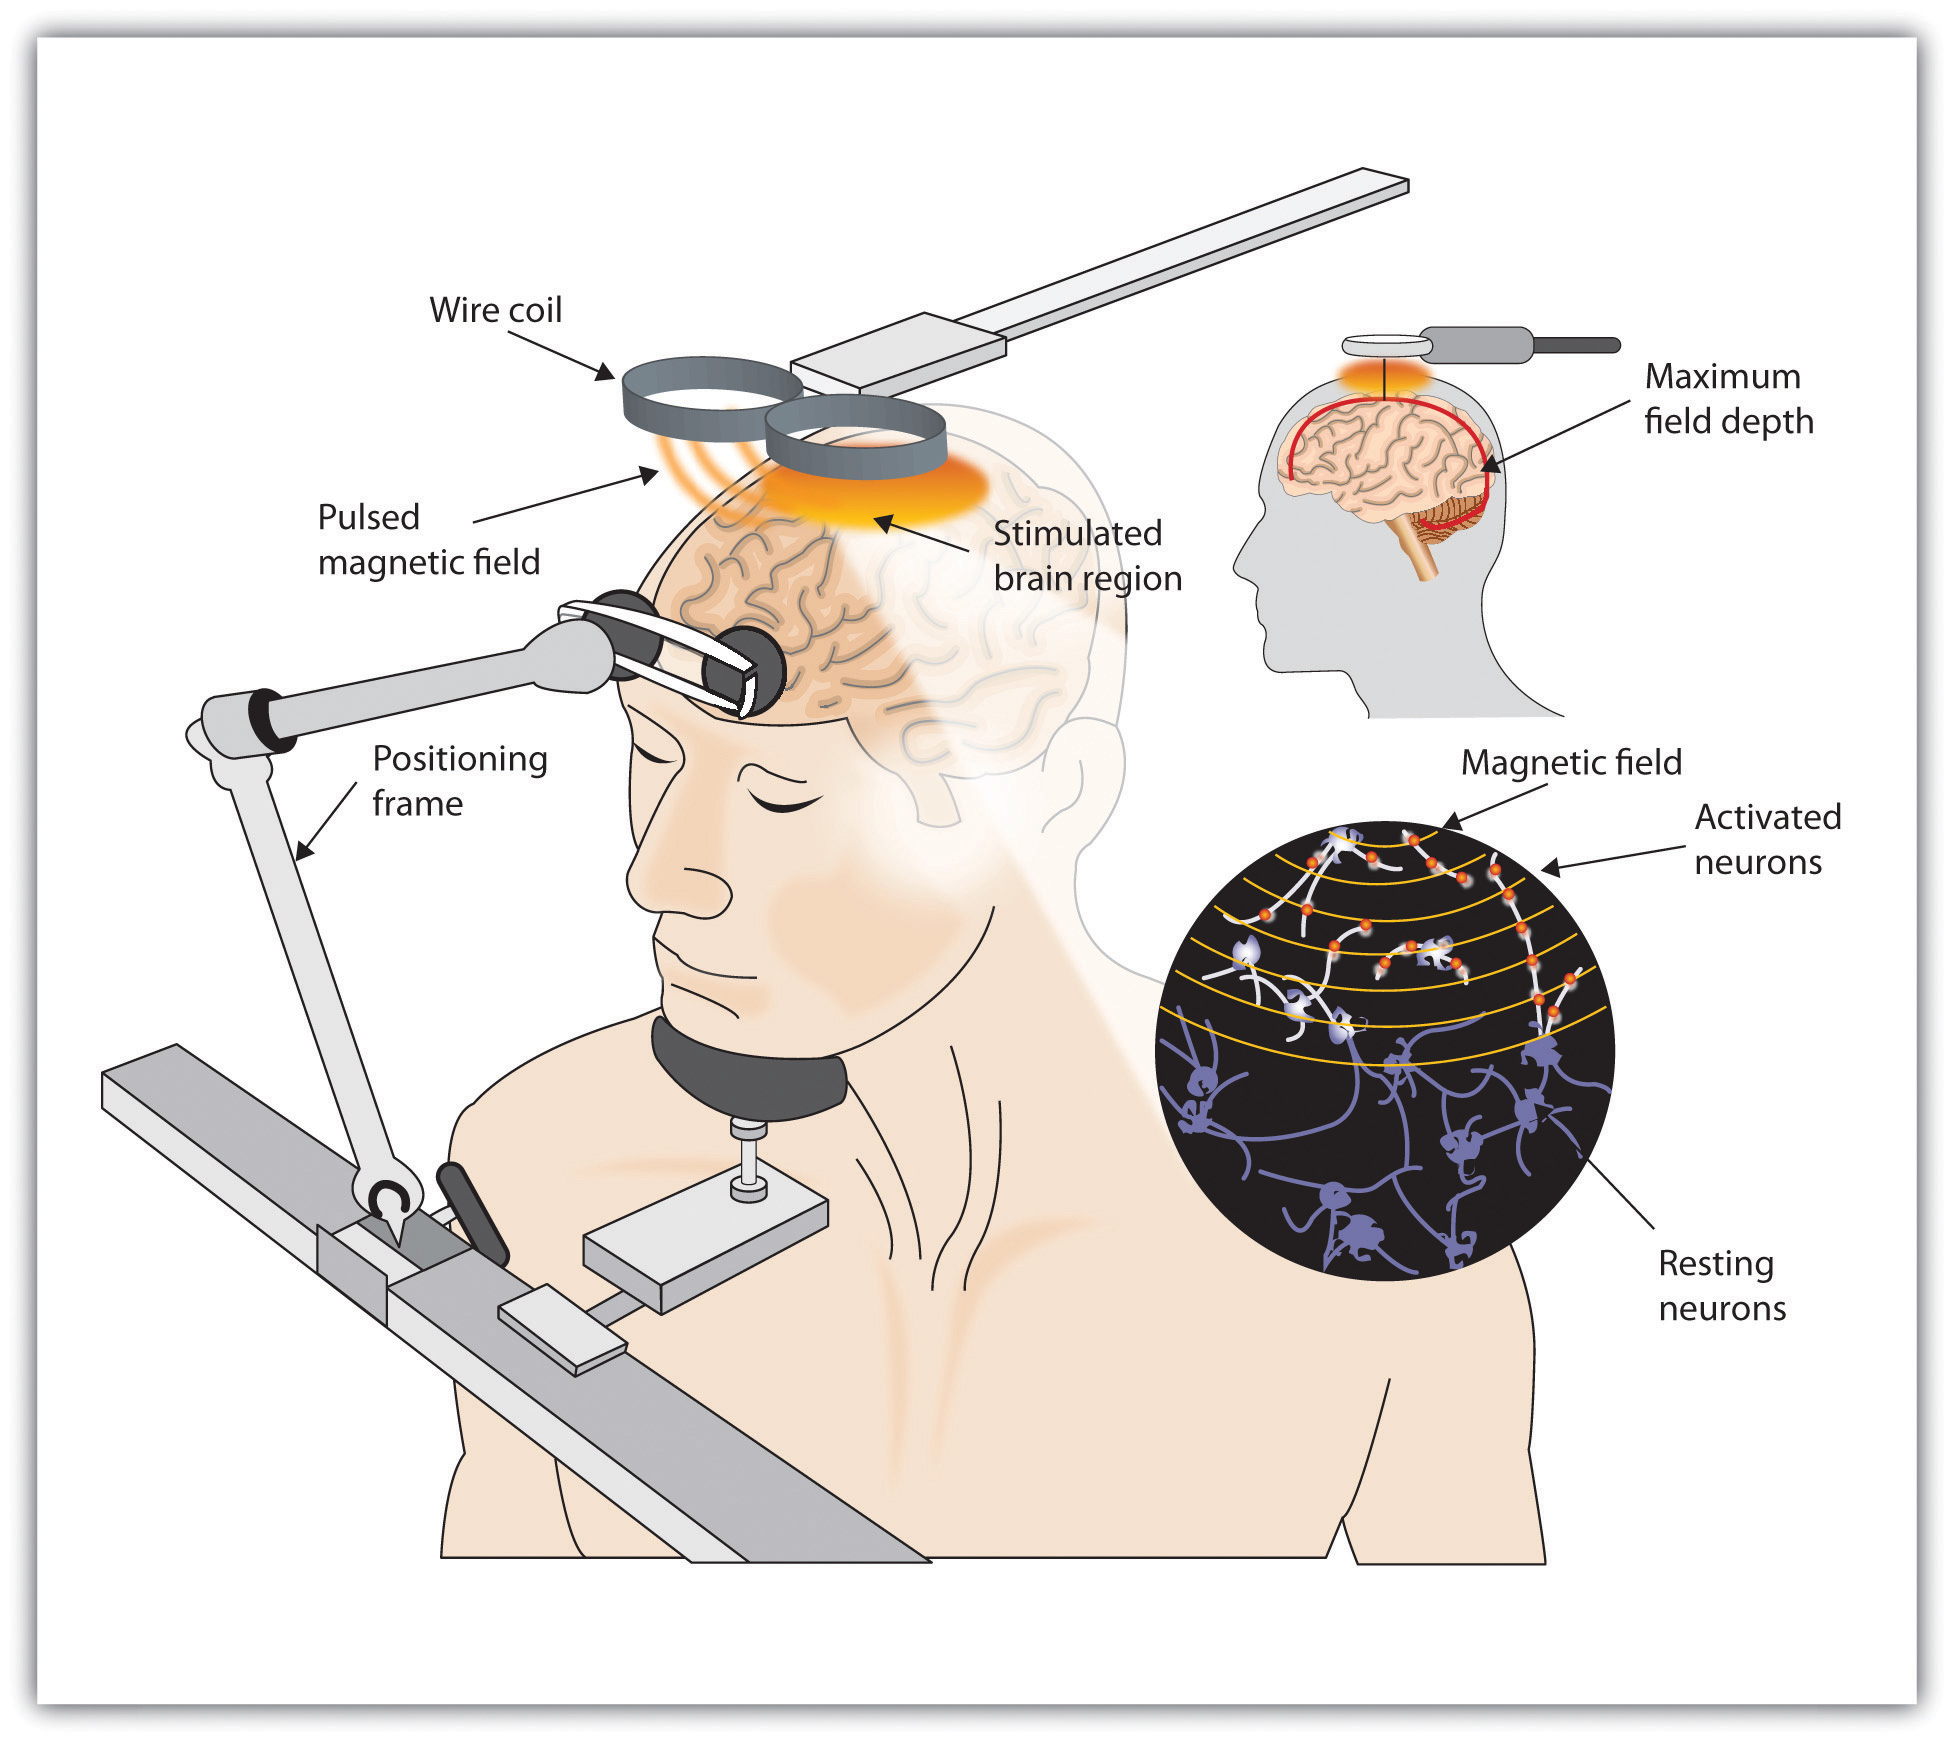 This diagram illustrates a man receiving transcranial magnetic stimulation (TMS) in which two wire coils pulse a magnetic field to electrically stimulate his brain.